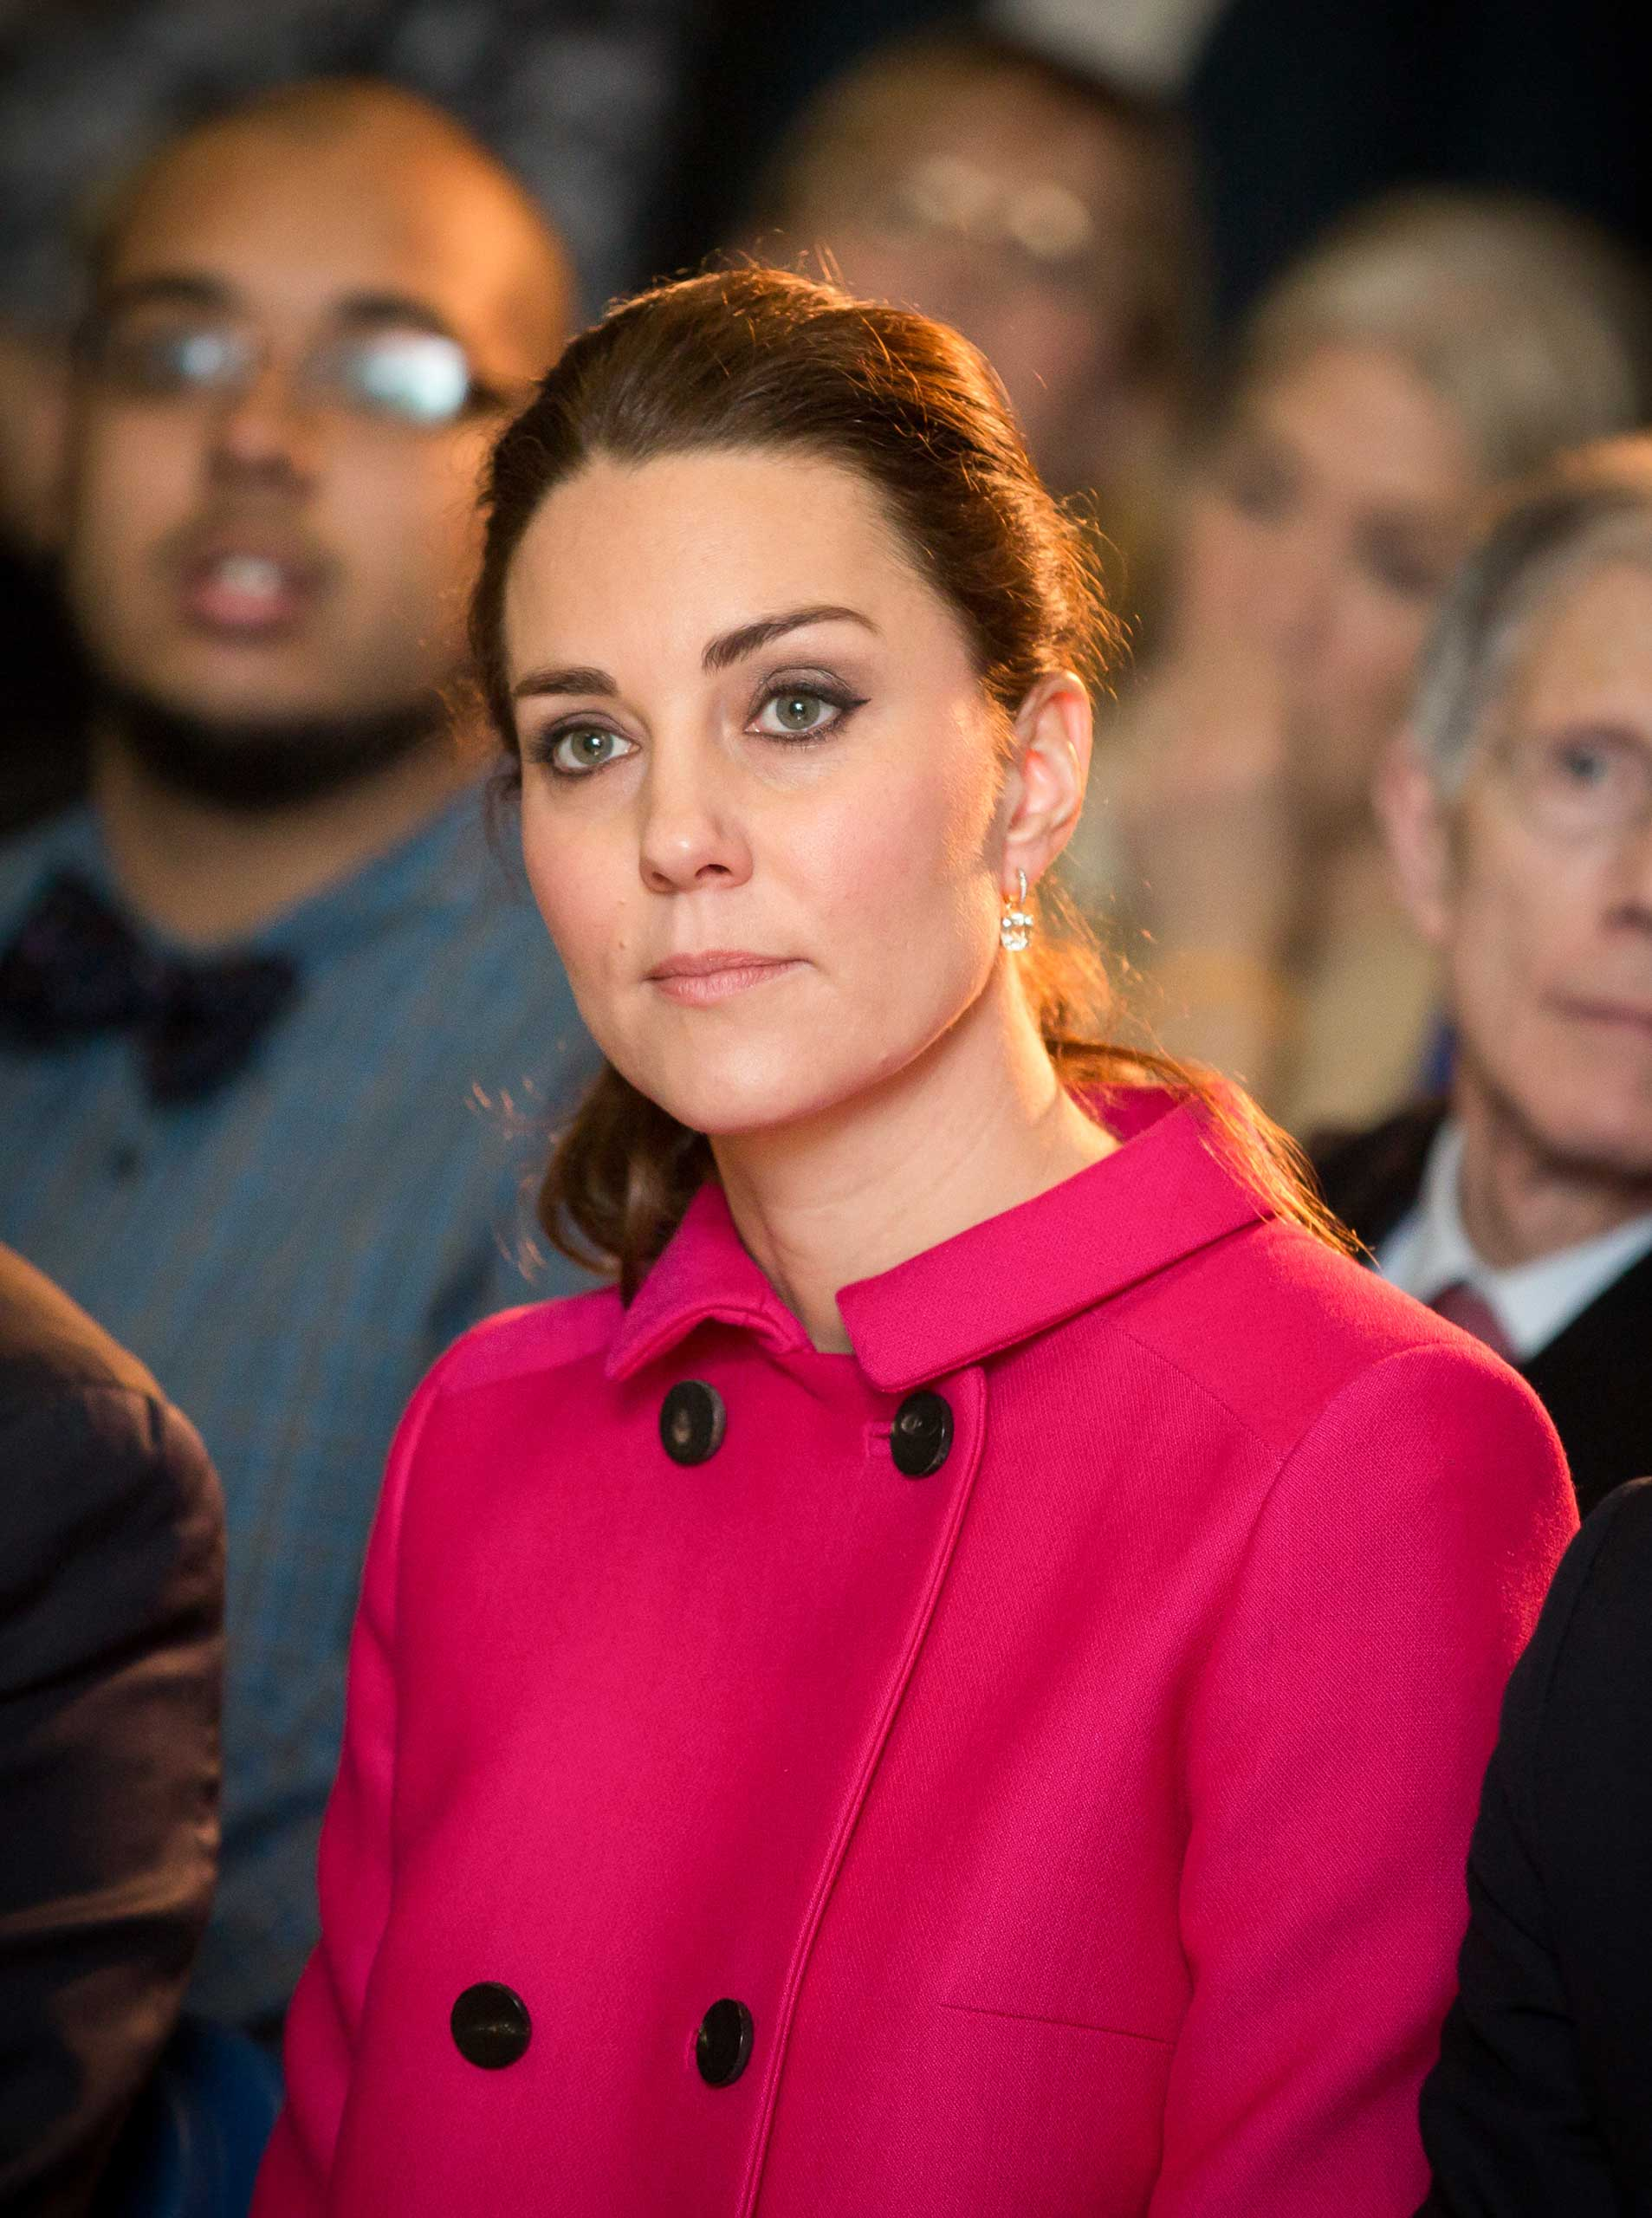 Catherine, Duchess of Cambridge watches an art performance as they visit The Door/City Kids Foundation on Dec. 9, 2014 in New York City.